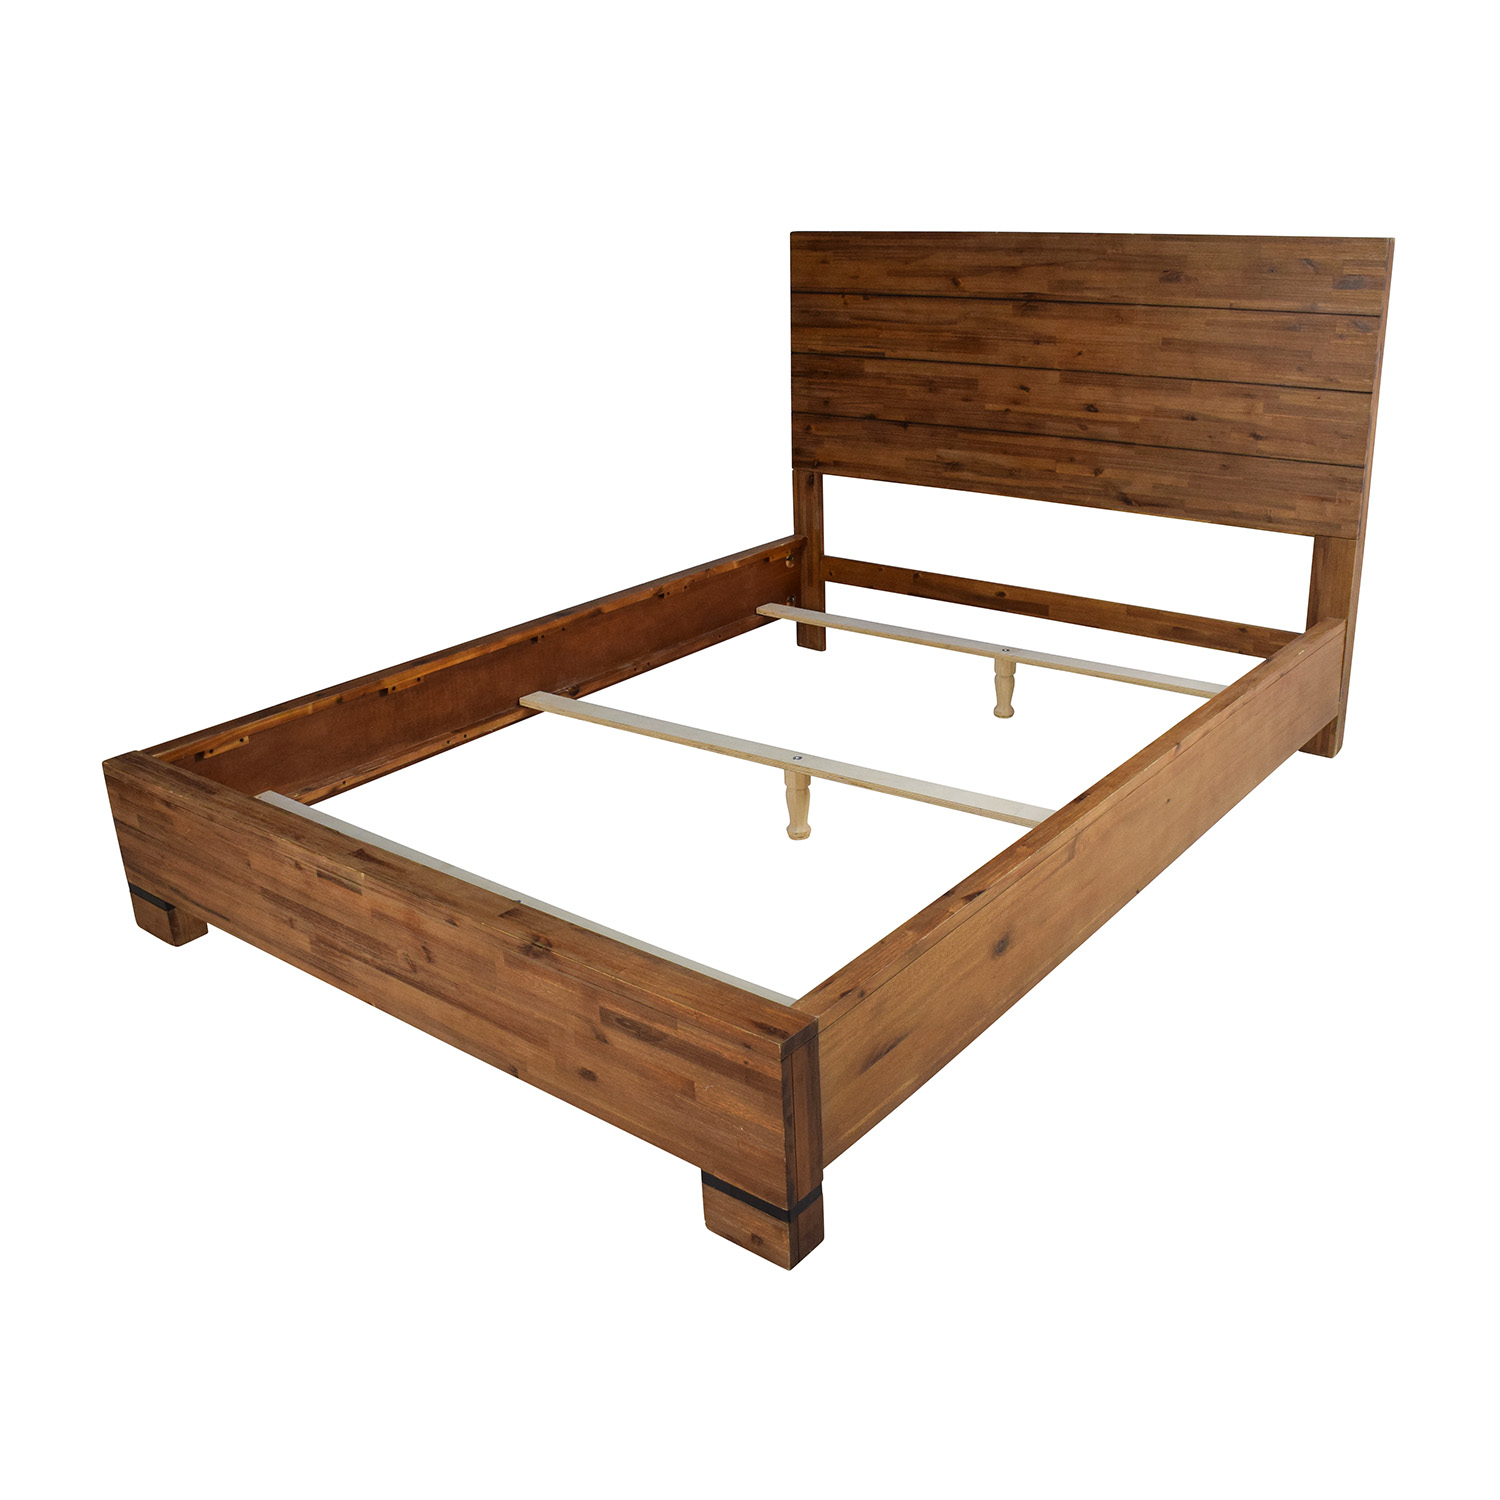 50 off macy s macy s chagne queen bed frame beds 10236 | macy s chagne queen bed frame